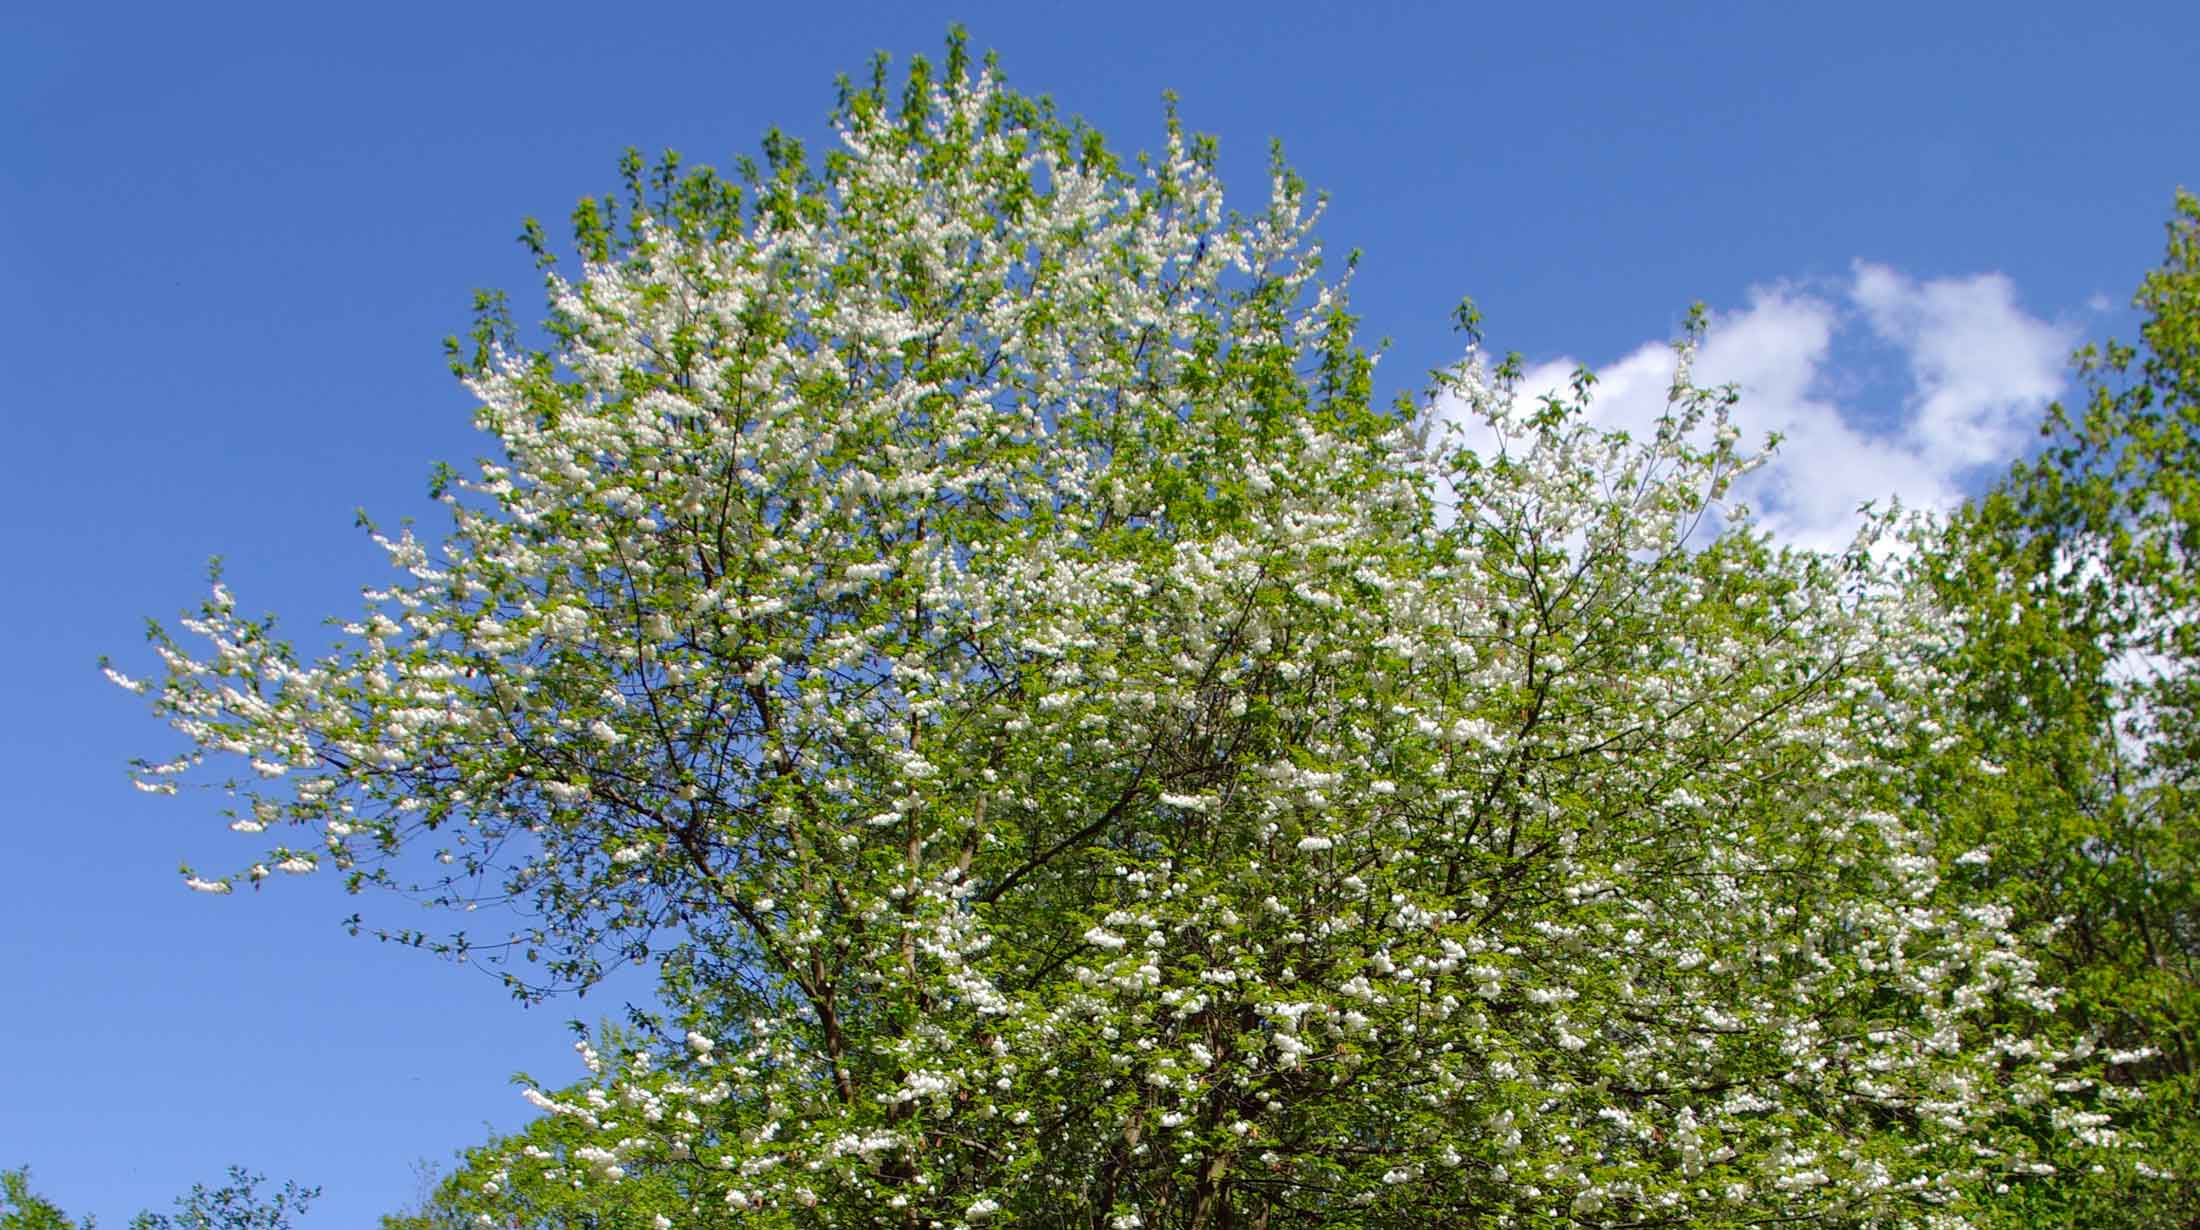 This 30 40 Foot Tall By 20 35 Wide Tree Has A Subtle Beauty With Cers Of Two To Five Pendulous White Bell Shaped Flowers In April